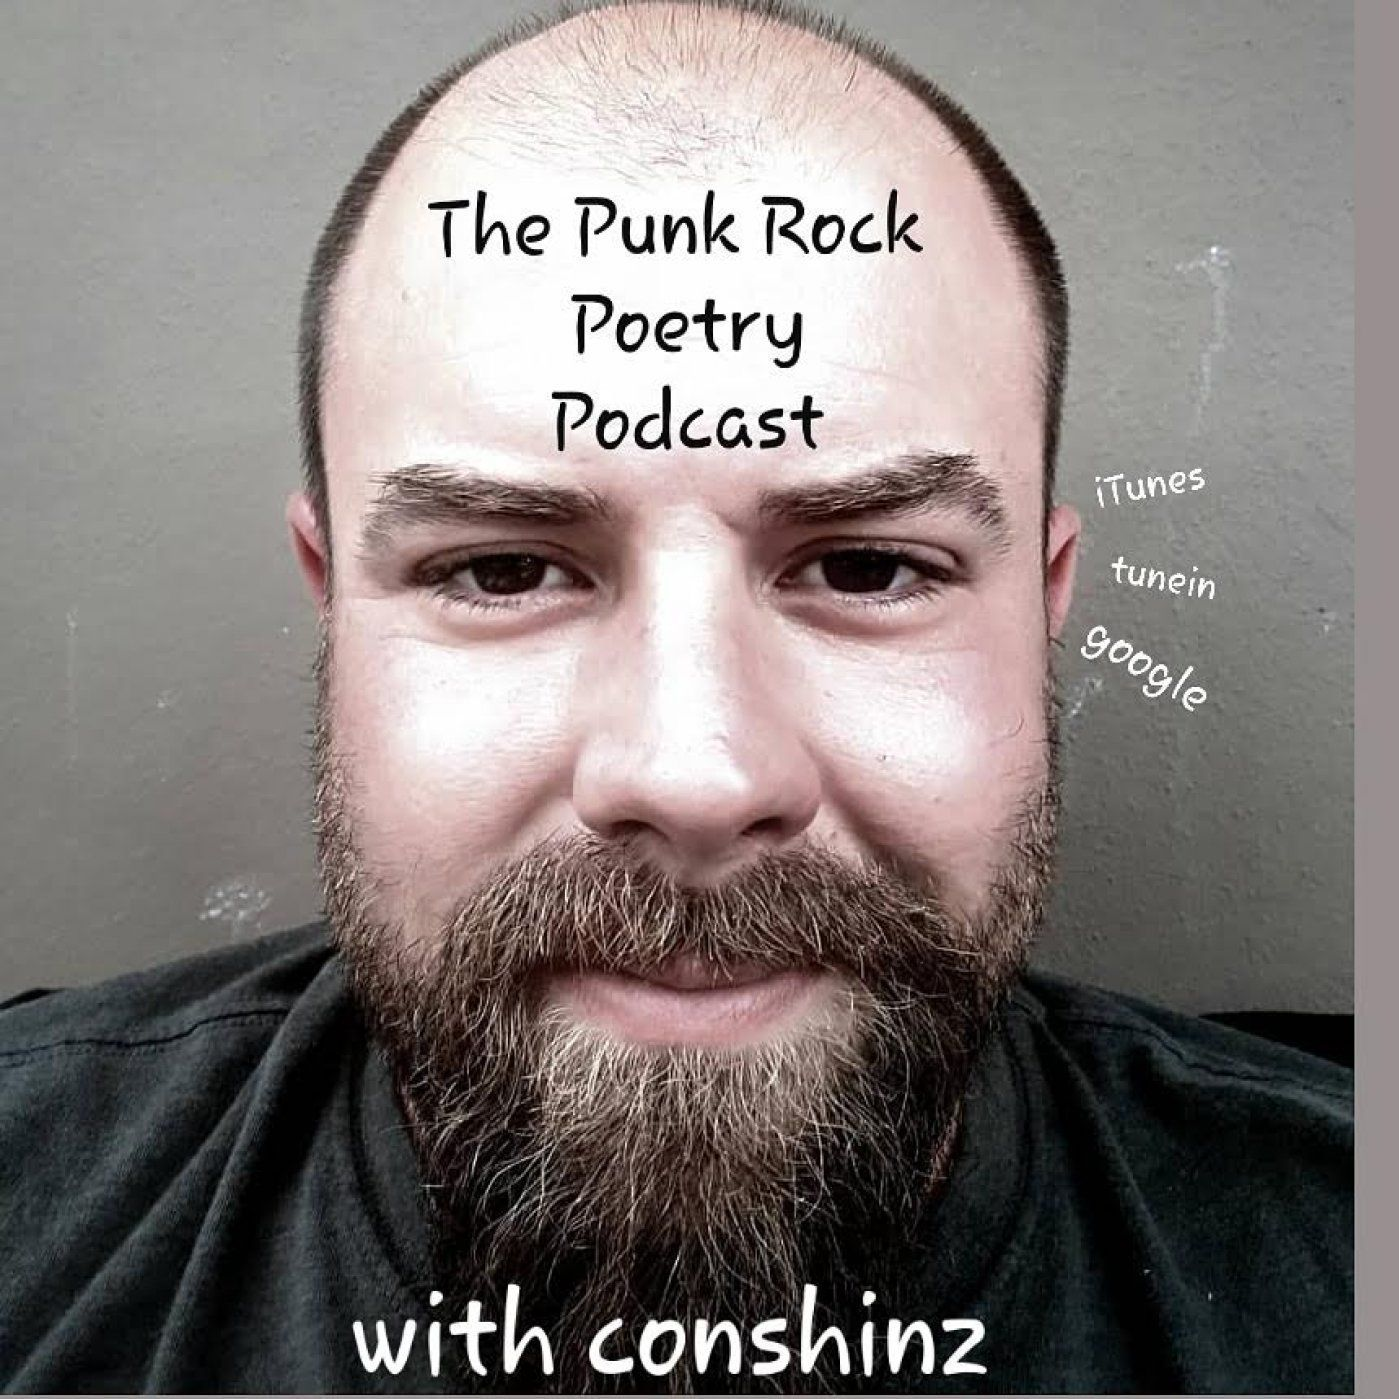 The Punk Rock Poetry Podcast - Hip Hop Night - 10 07 2019